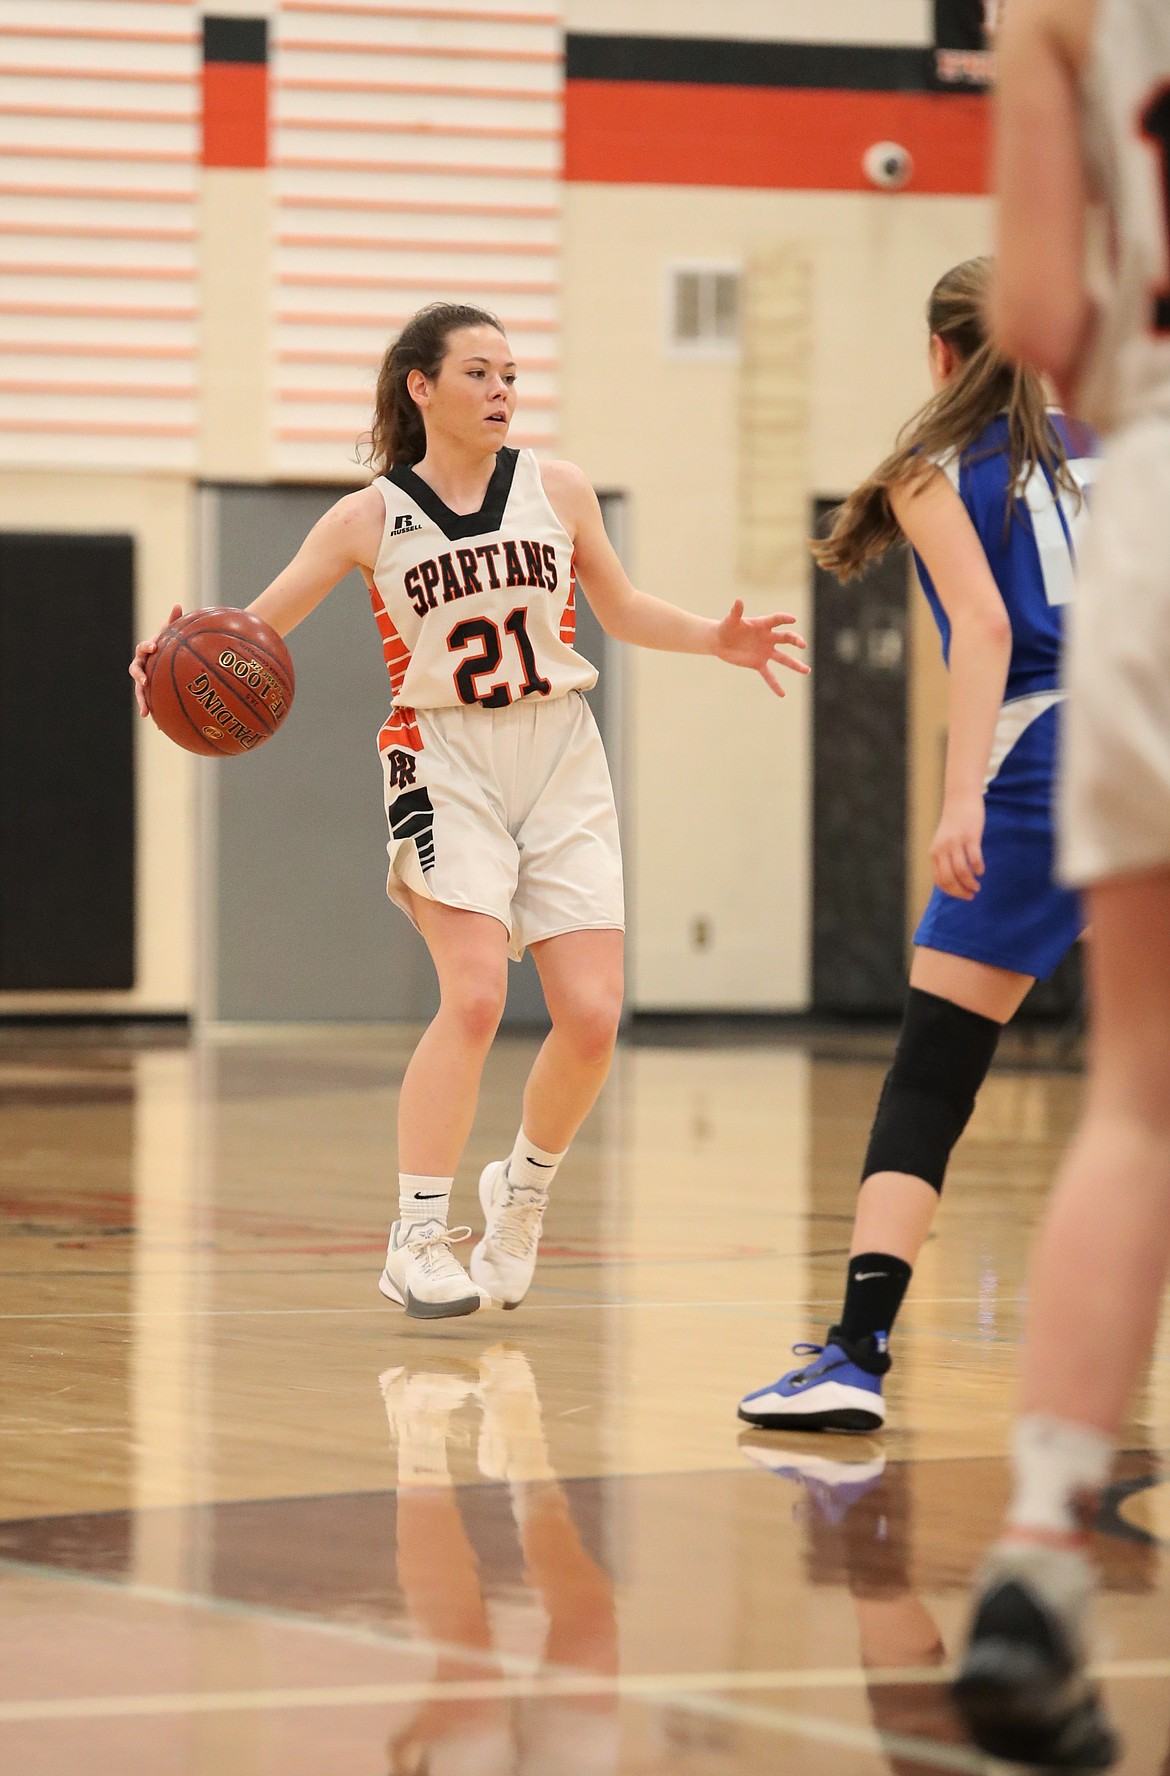 Senior Hannah Palfrey brings the ball up the court on Monday night.